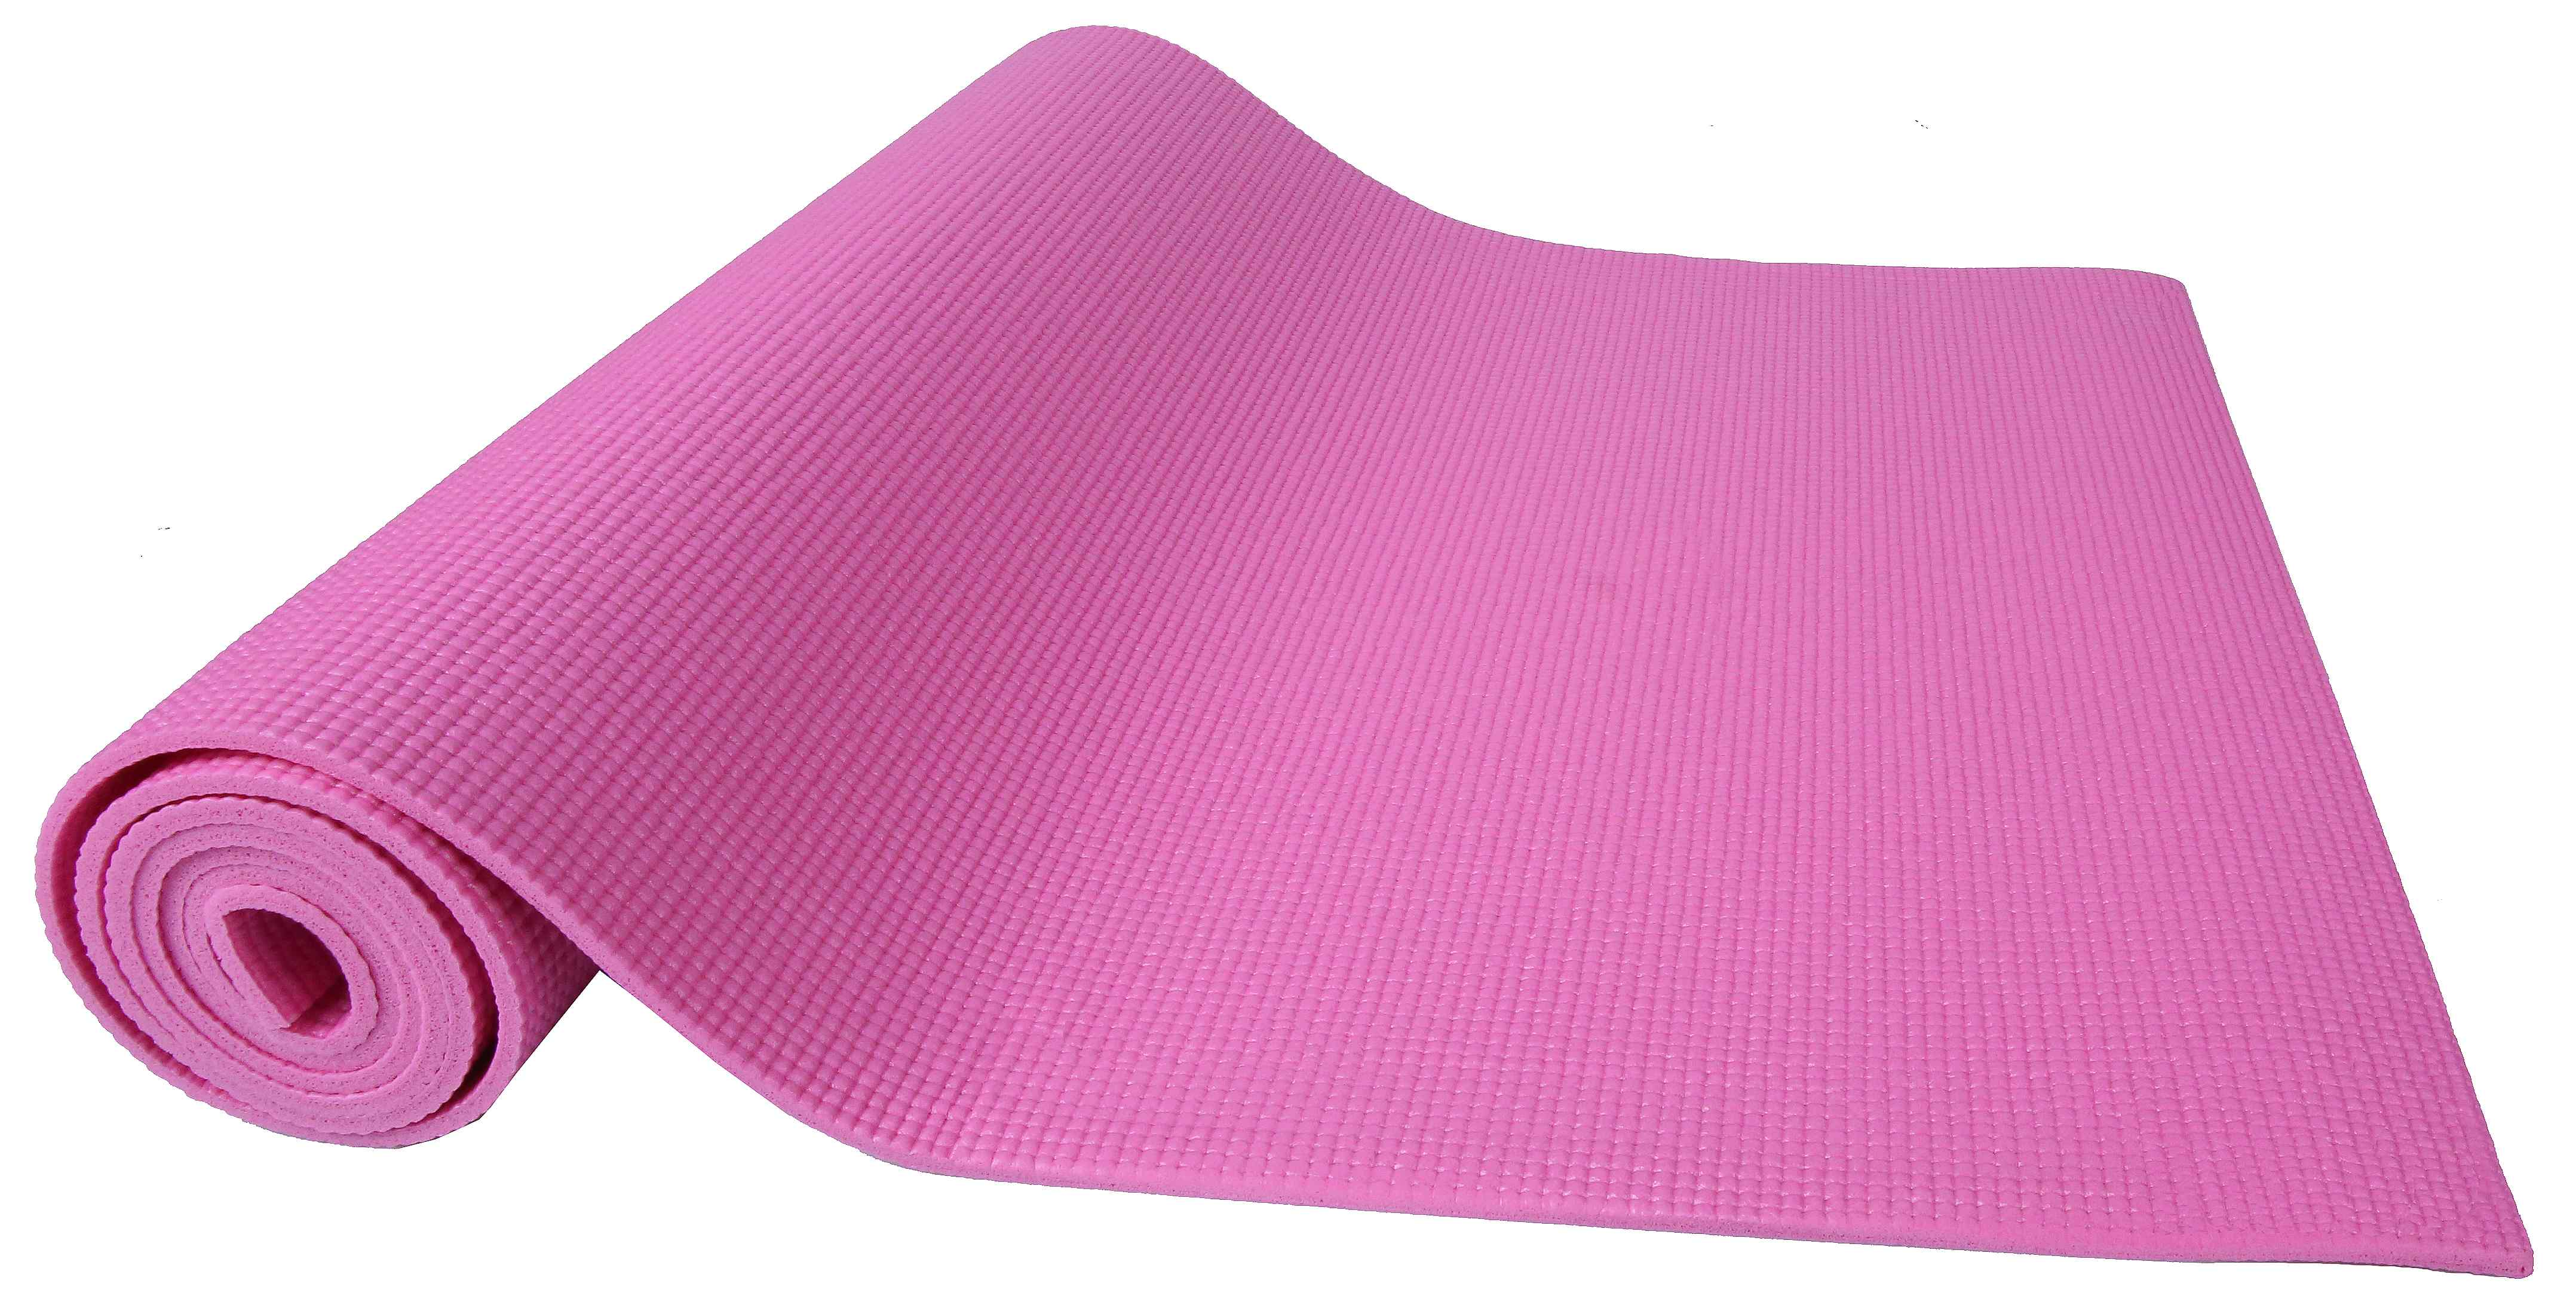 [US Direct] Original BalanceFrom GoYoga All Purpose High Density Non-Slip Exercise Yoga Mat with Carrying Strap, Blue Pink